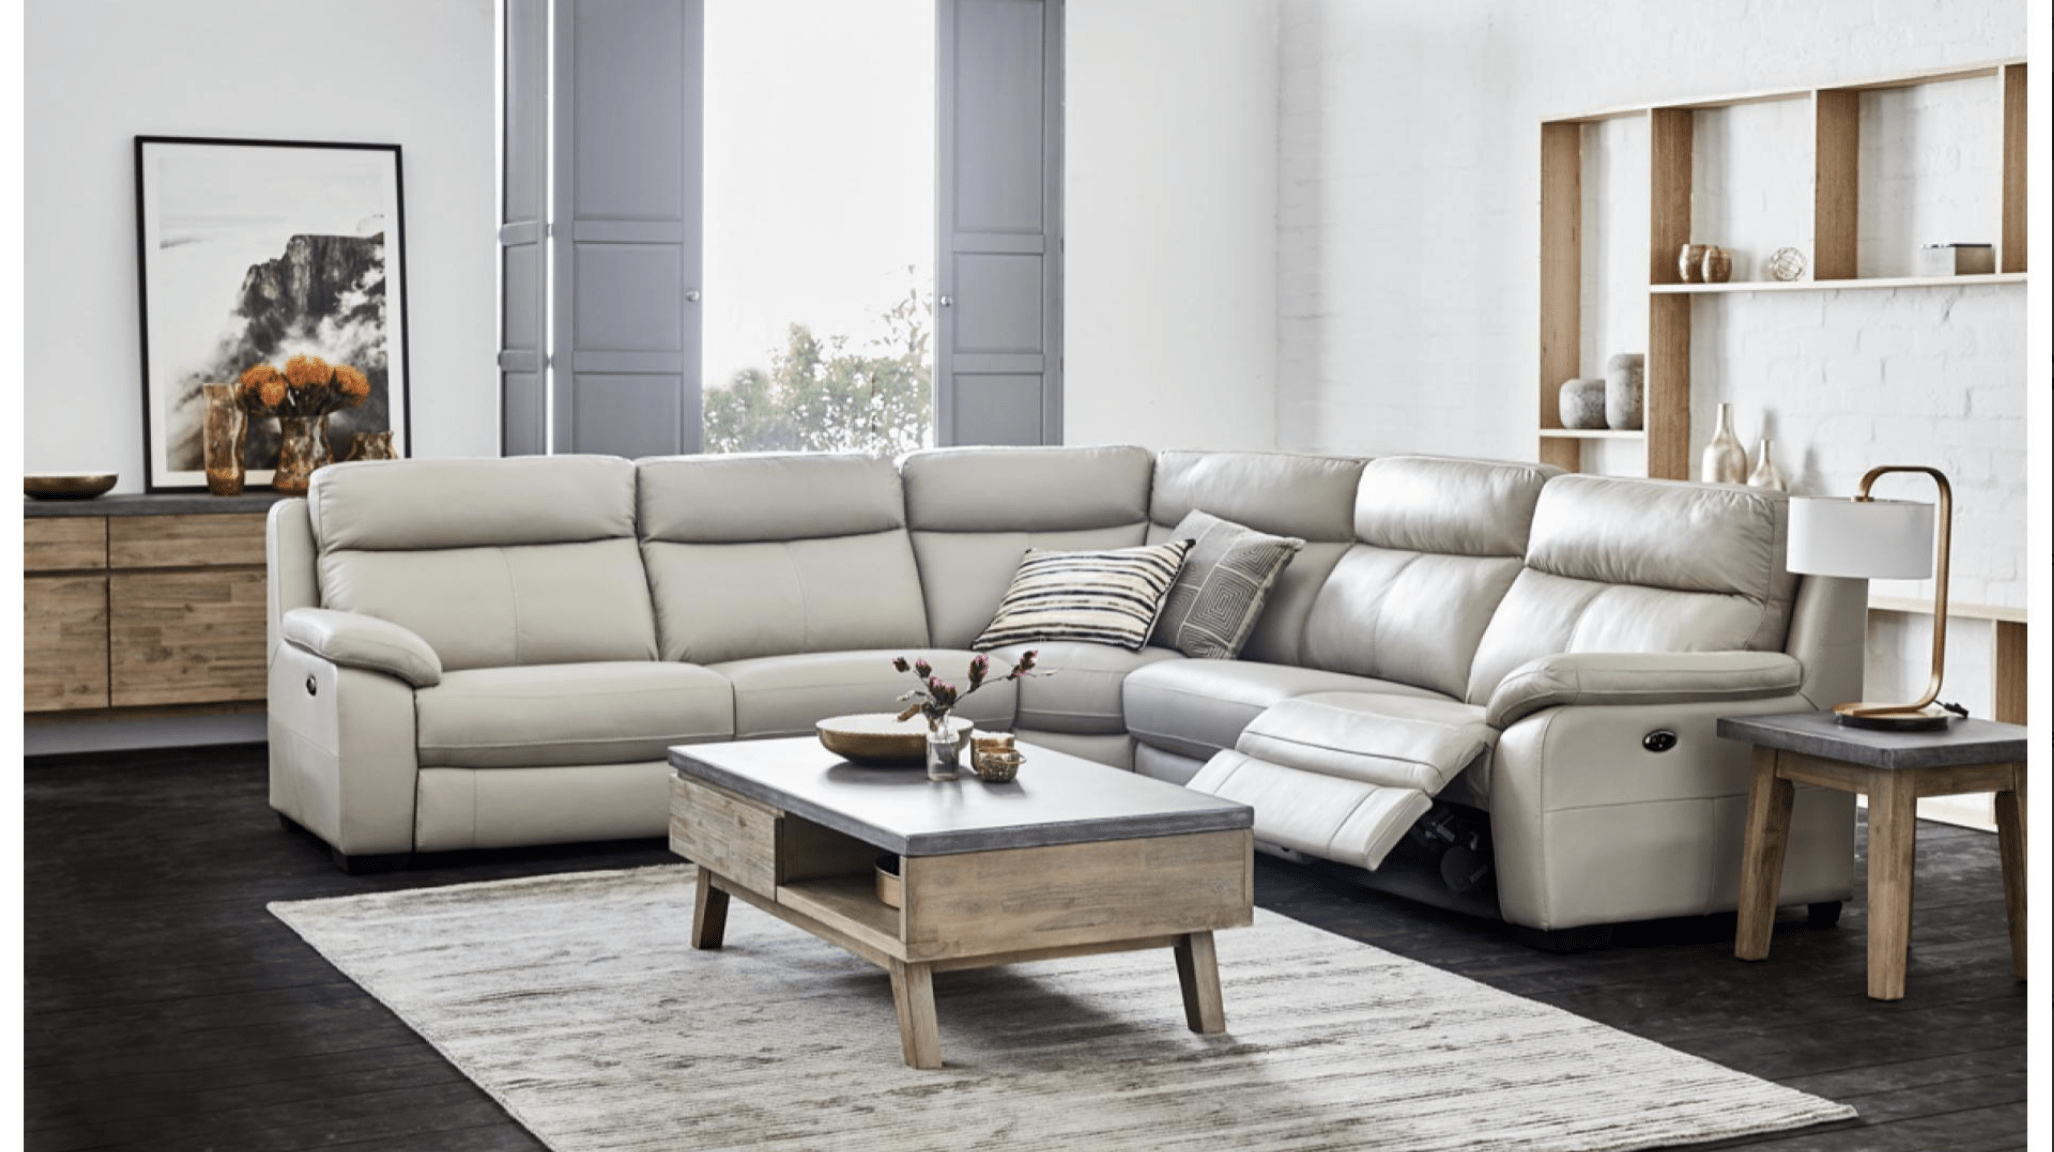 Titan Corner Suite – Corrimal Lounges Within Titan Leather Power Reclining Sofas (View 5 of 15)